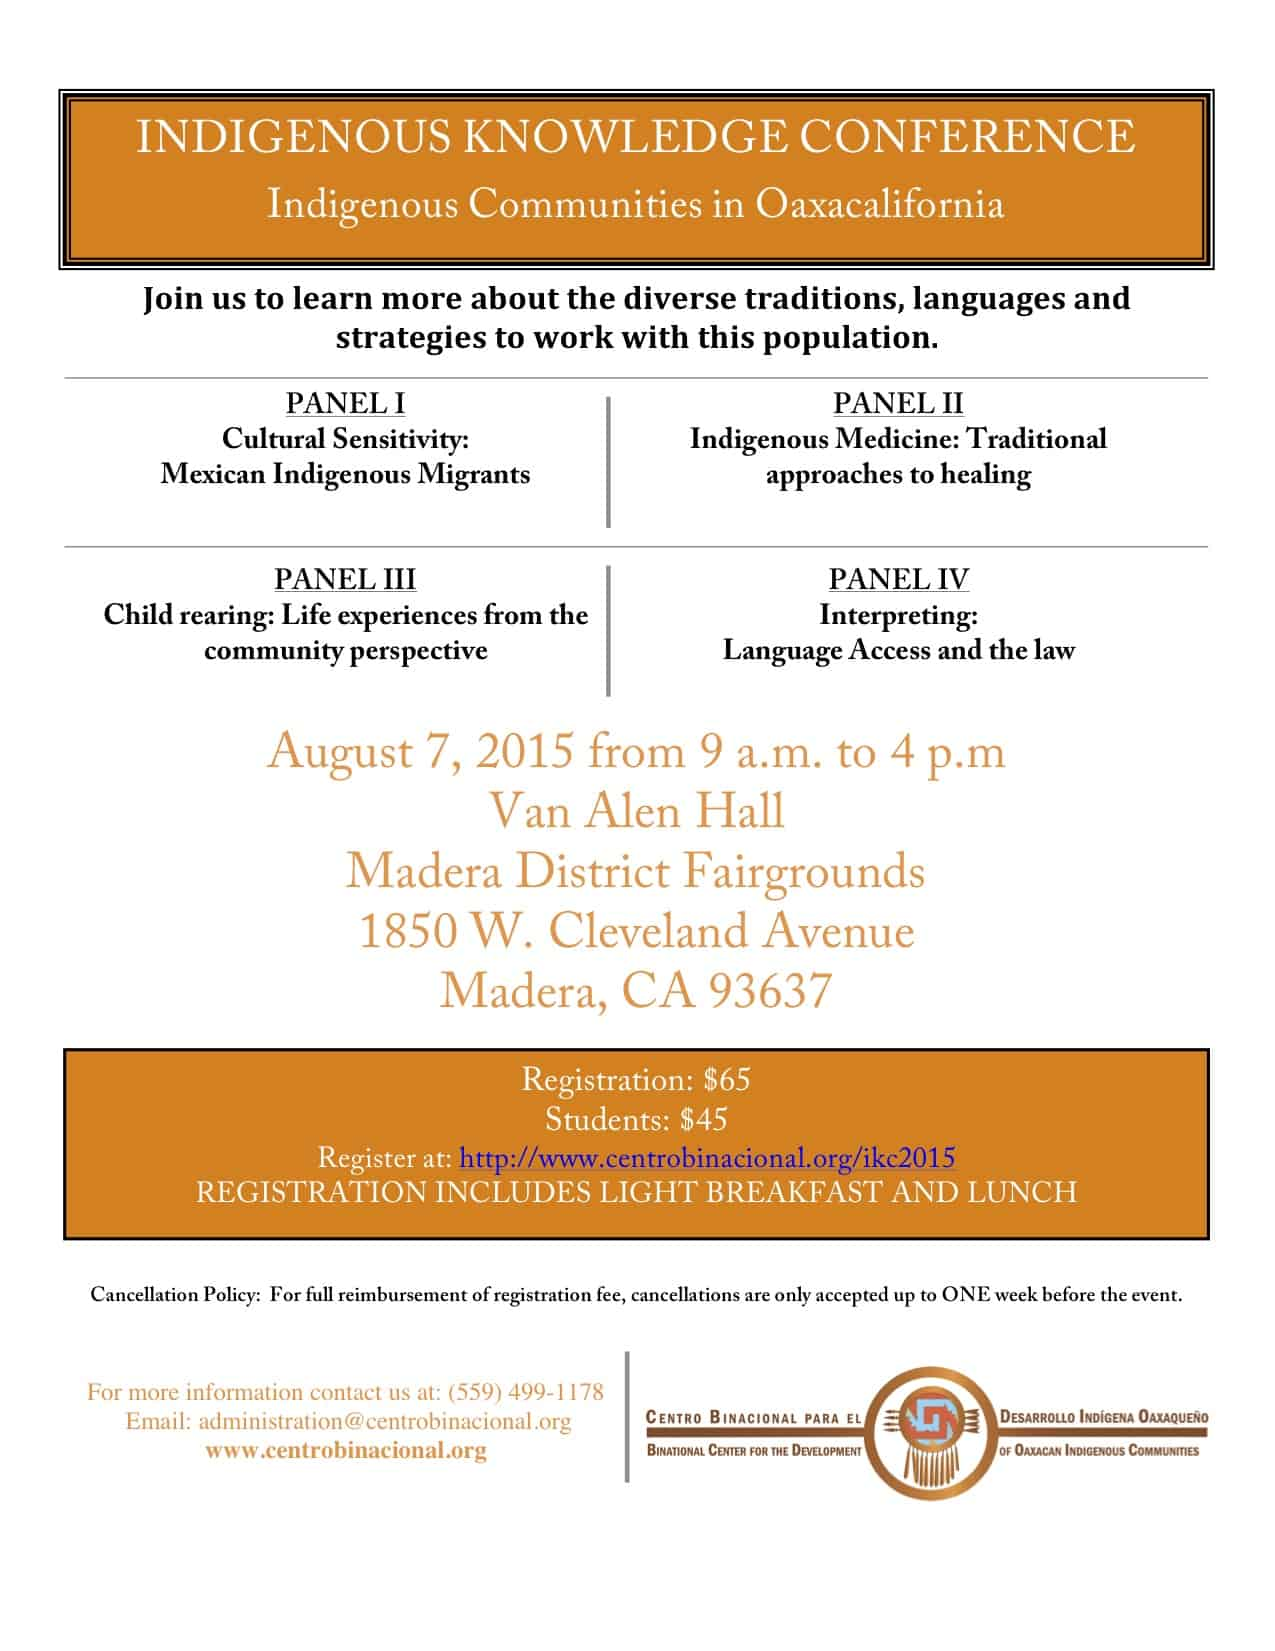 Indigenous Knowledge Conference Indigenous Communities in Oaxacalifornia, Madera California